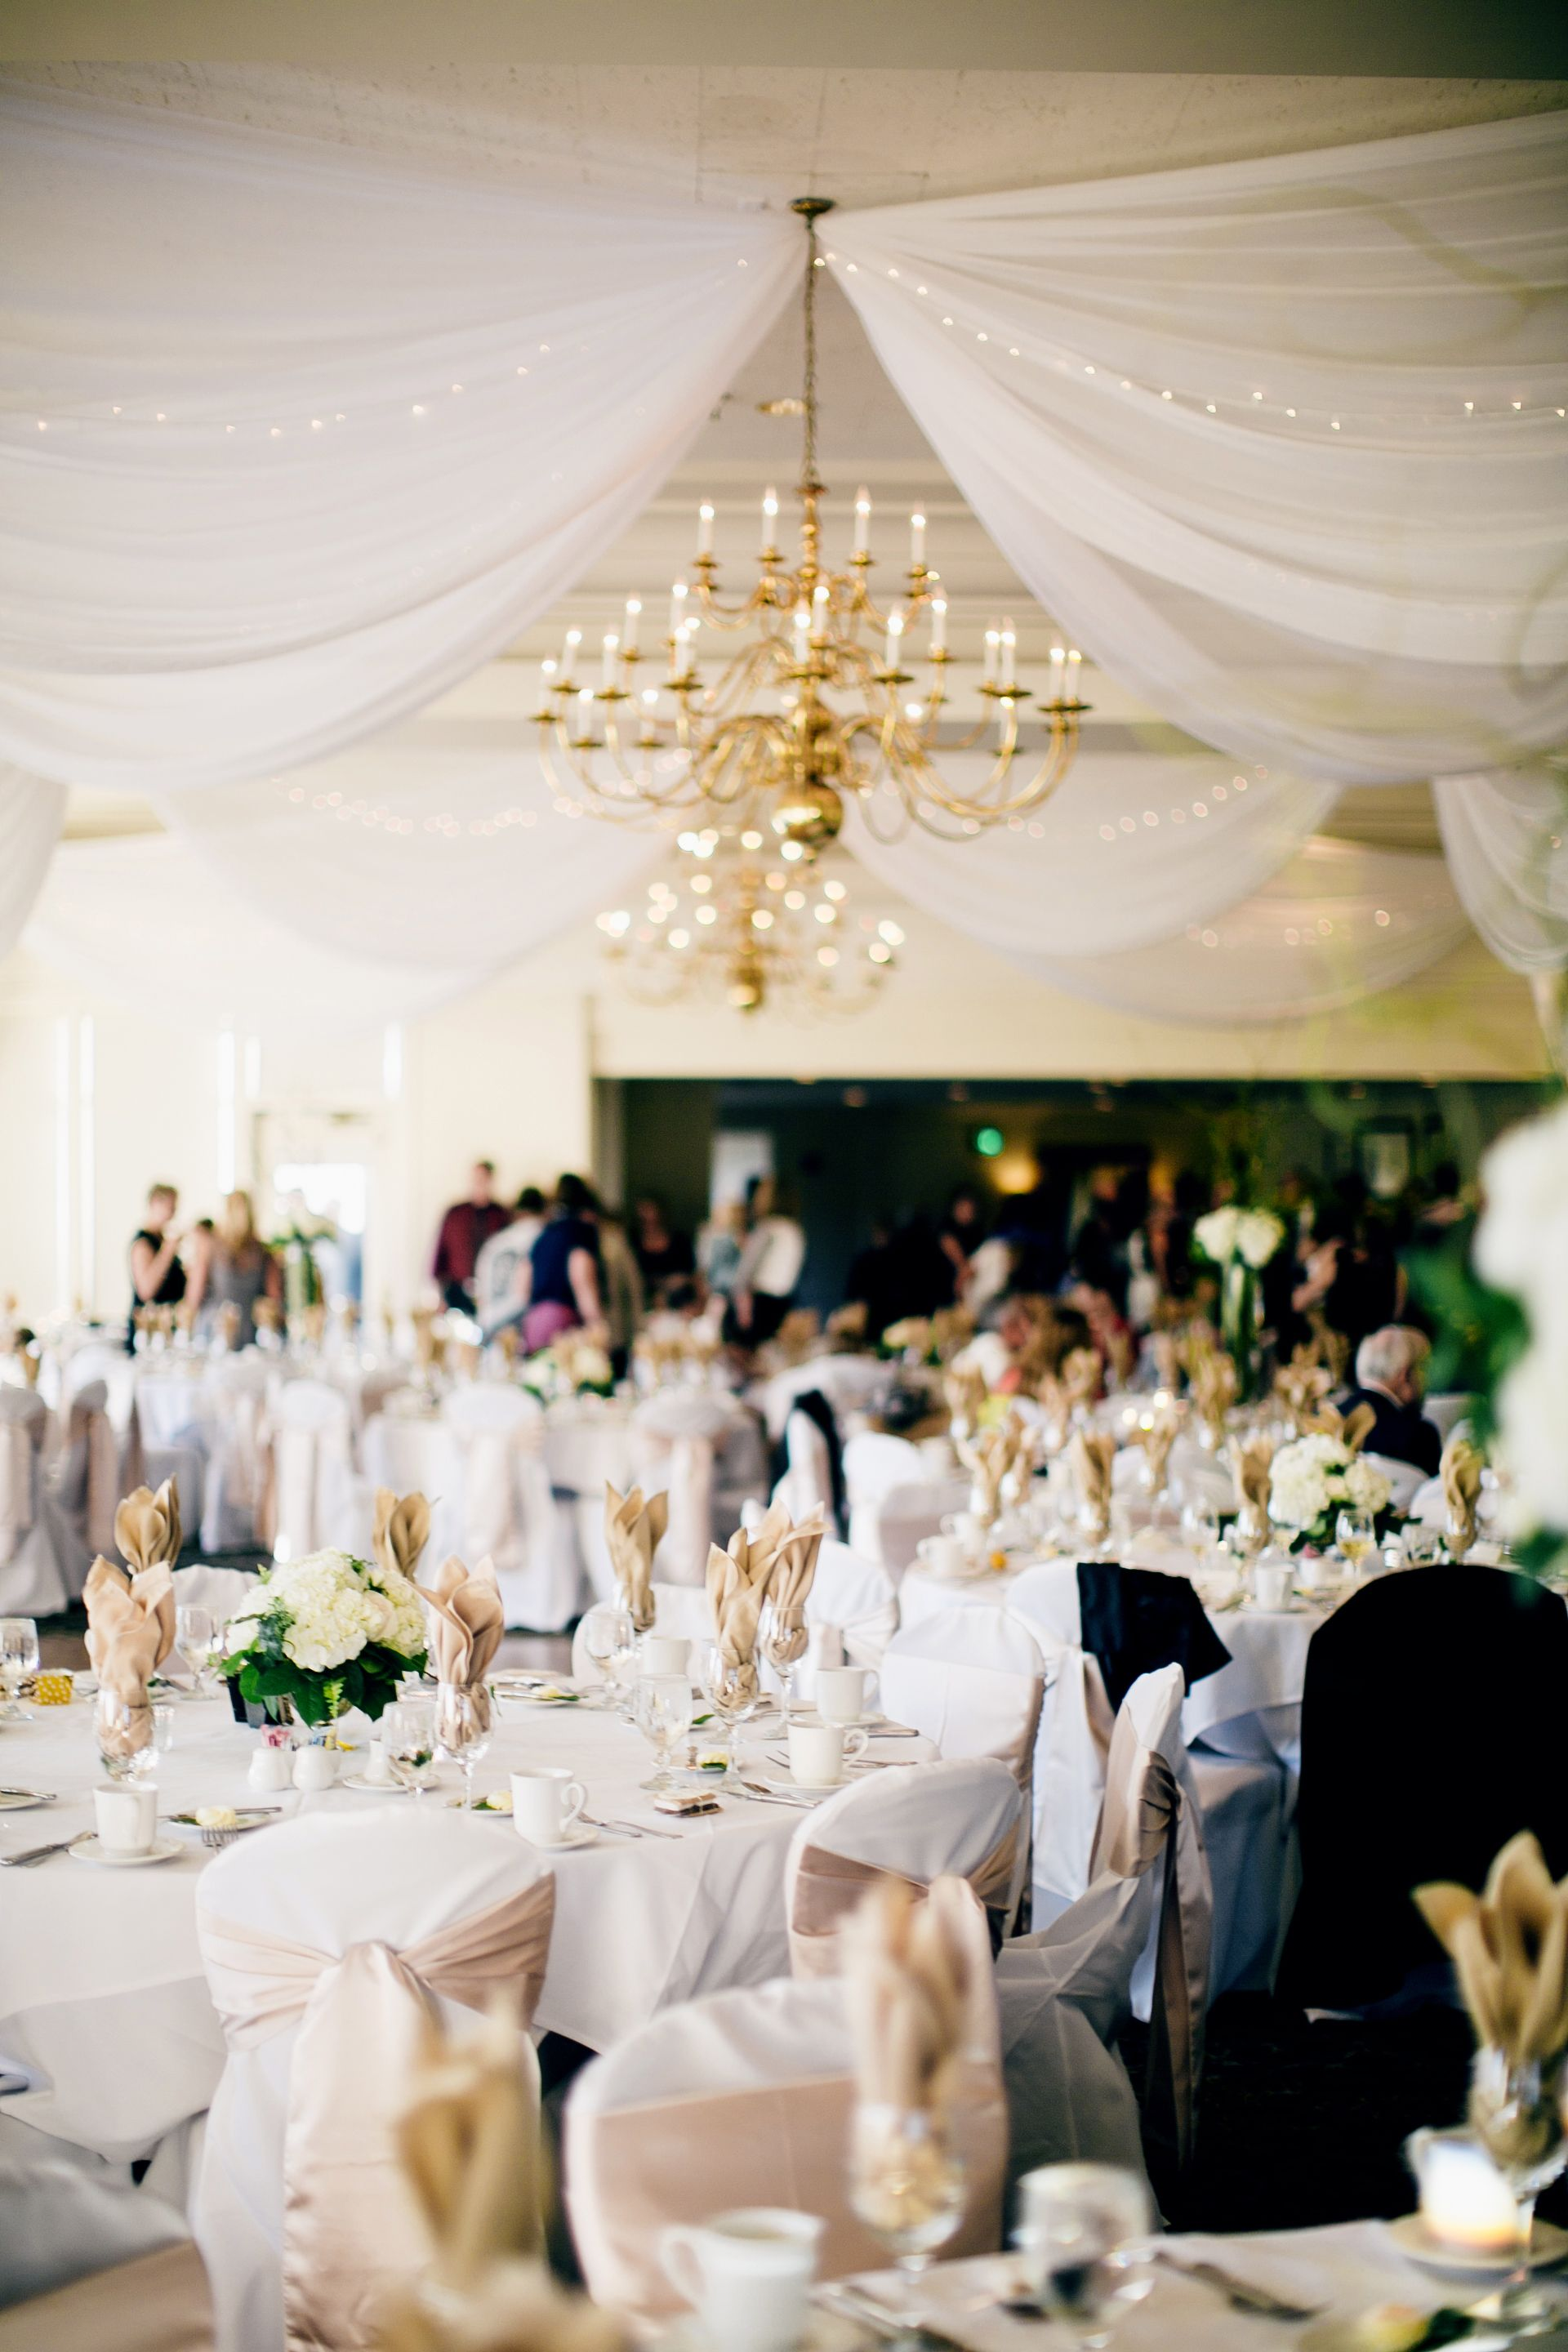 Pin by Thumbtack on Dream Weddings Wedding catering cost